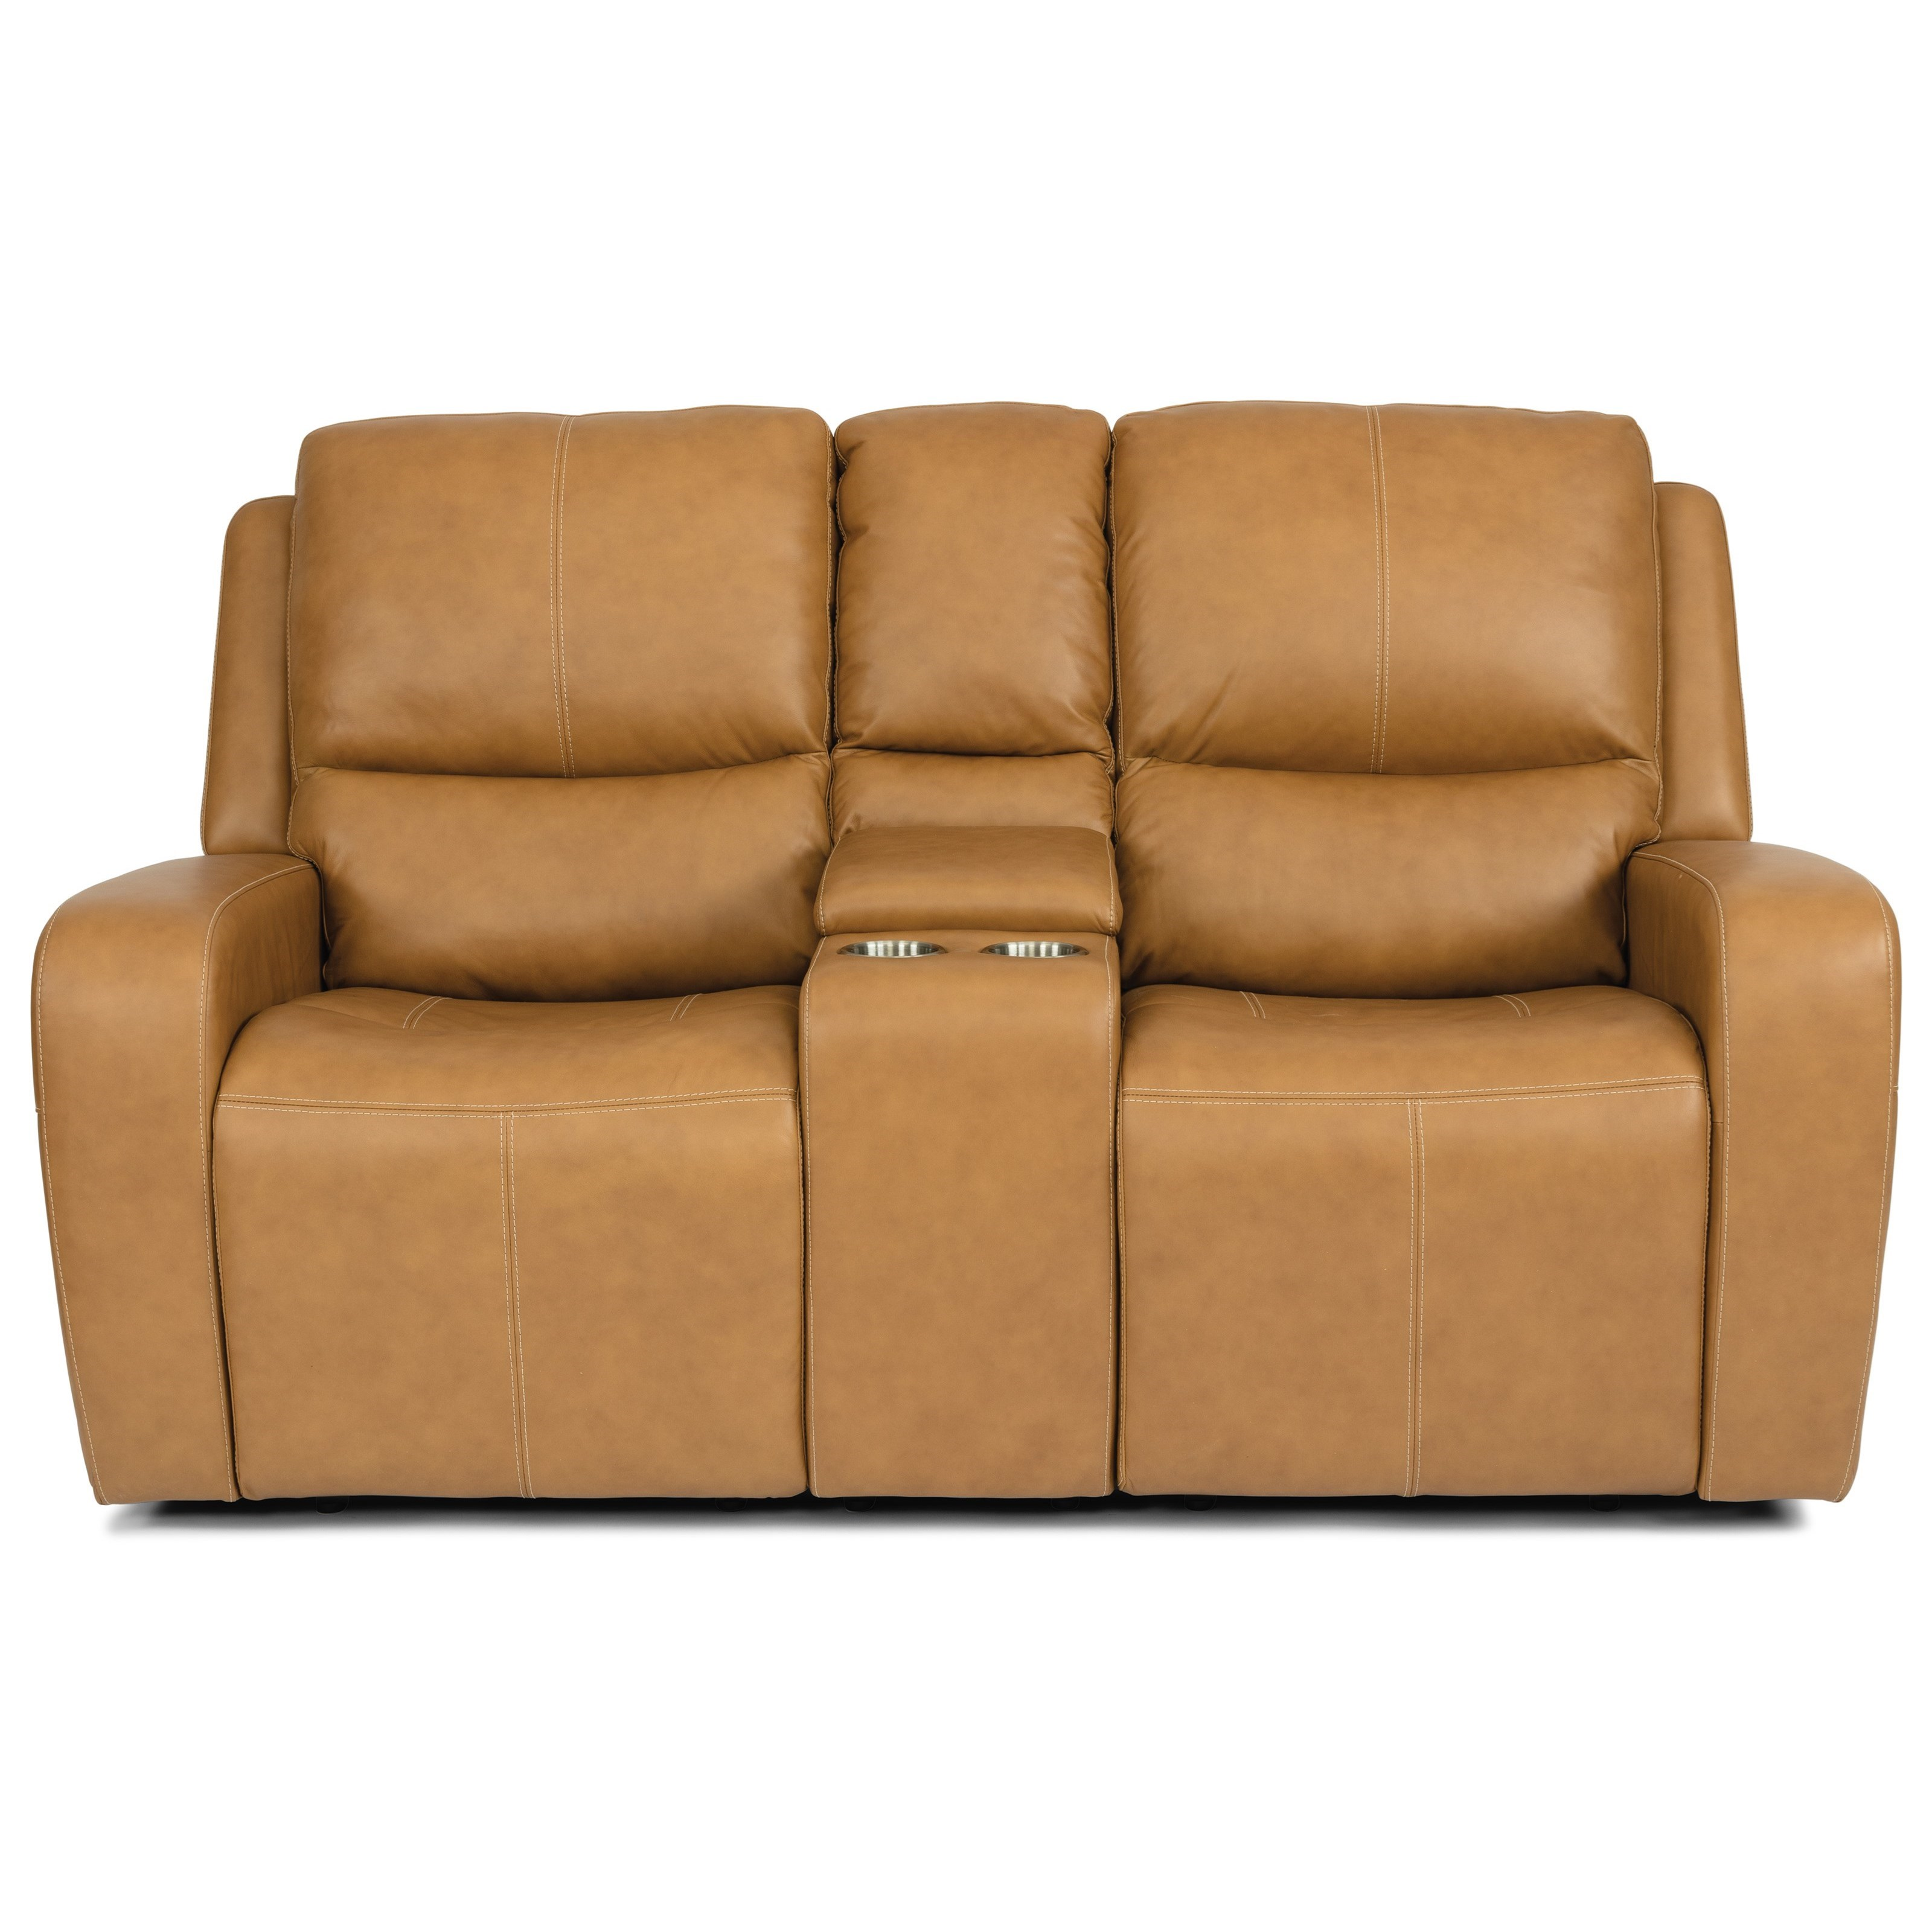 Latitudes - Aiden Power Reclining Console Loveseat by Flexsteel at Steger's Furniture